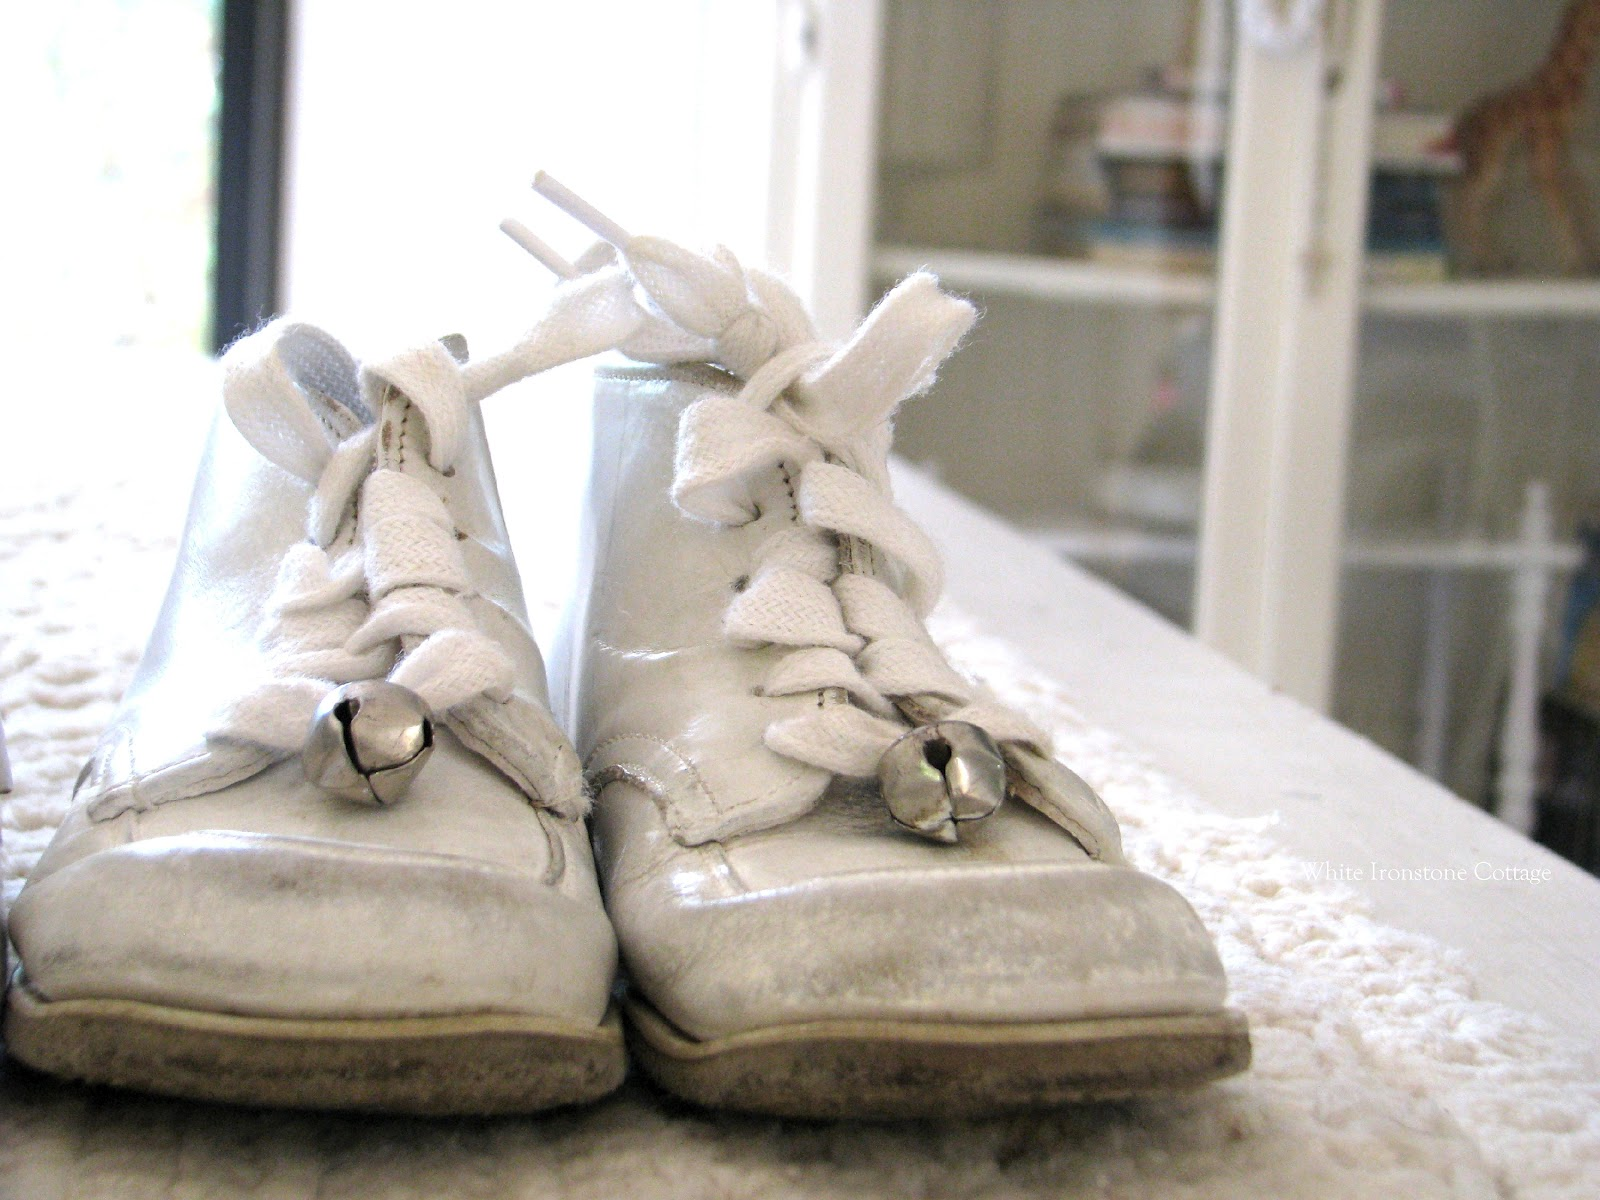 Funny Babies And Children's Shoes 15 High Resolution Wallpaper